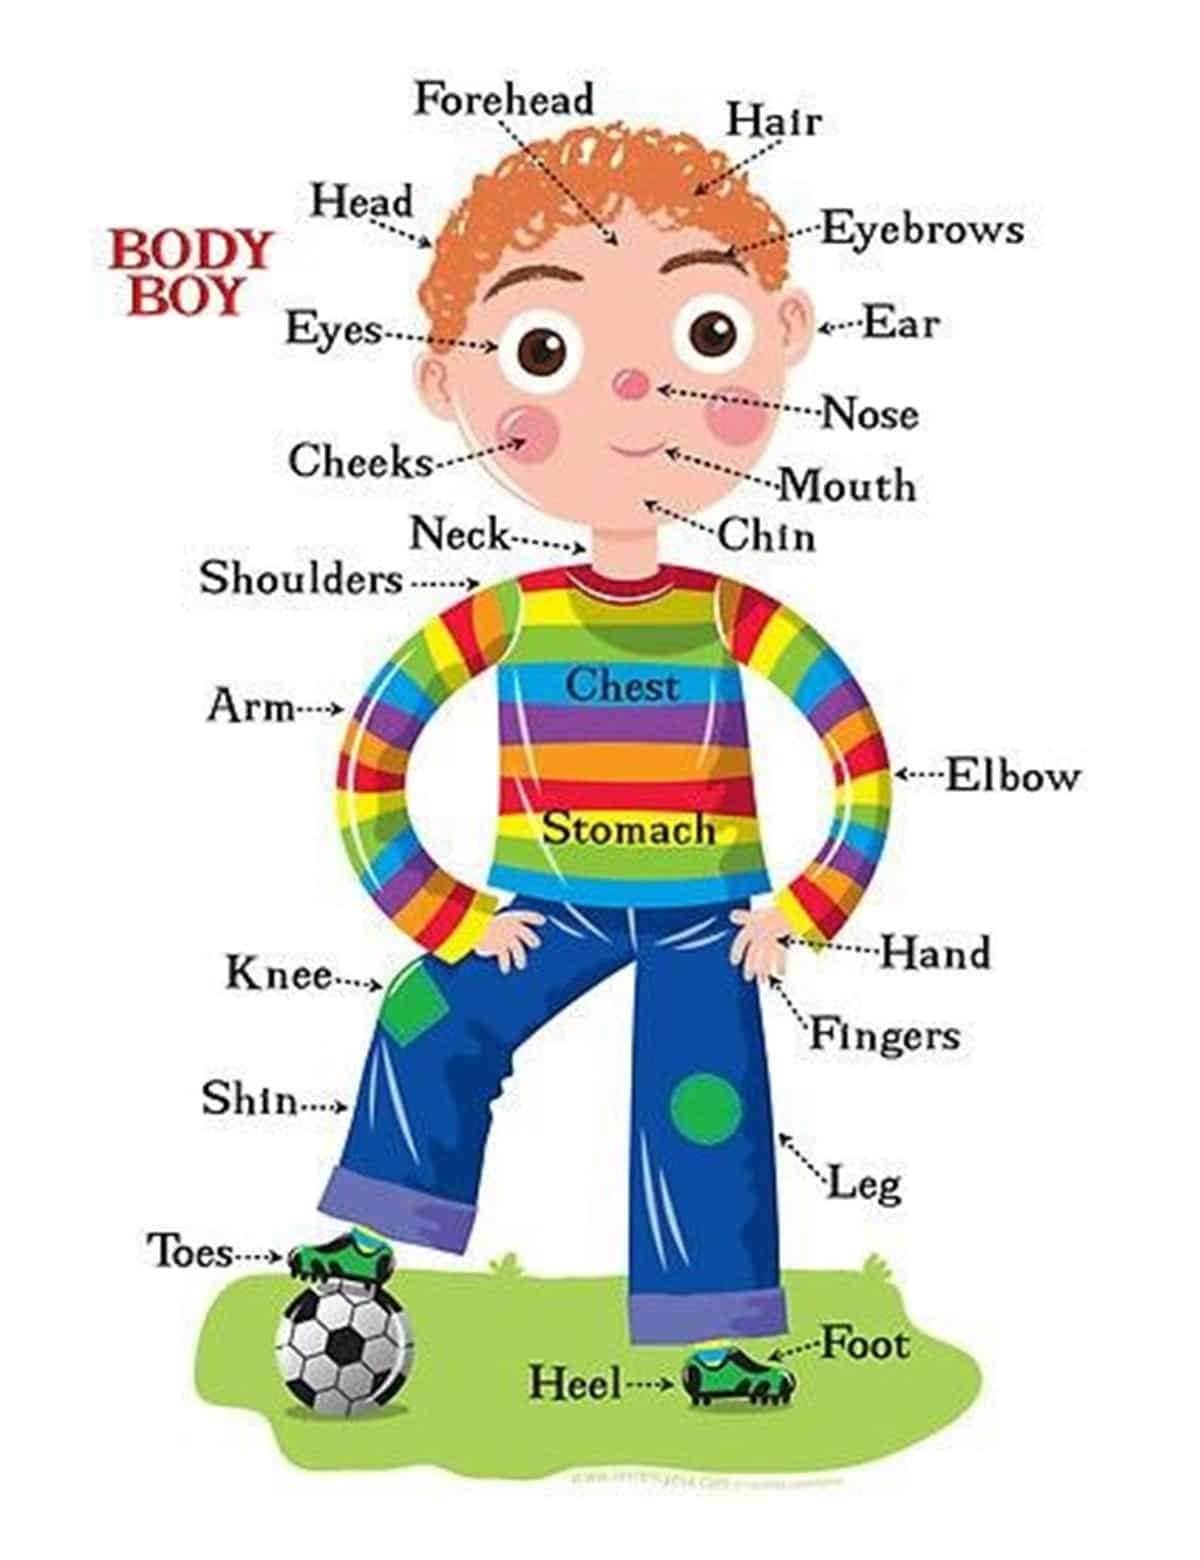 The Human Body Vocabulary: Let's Explore the Human Body!